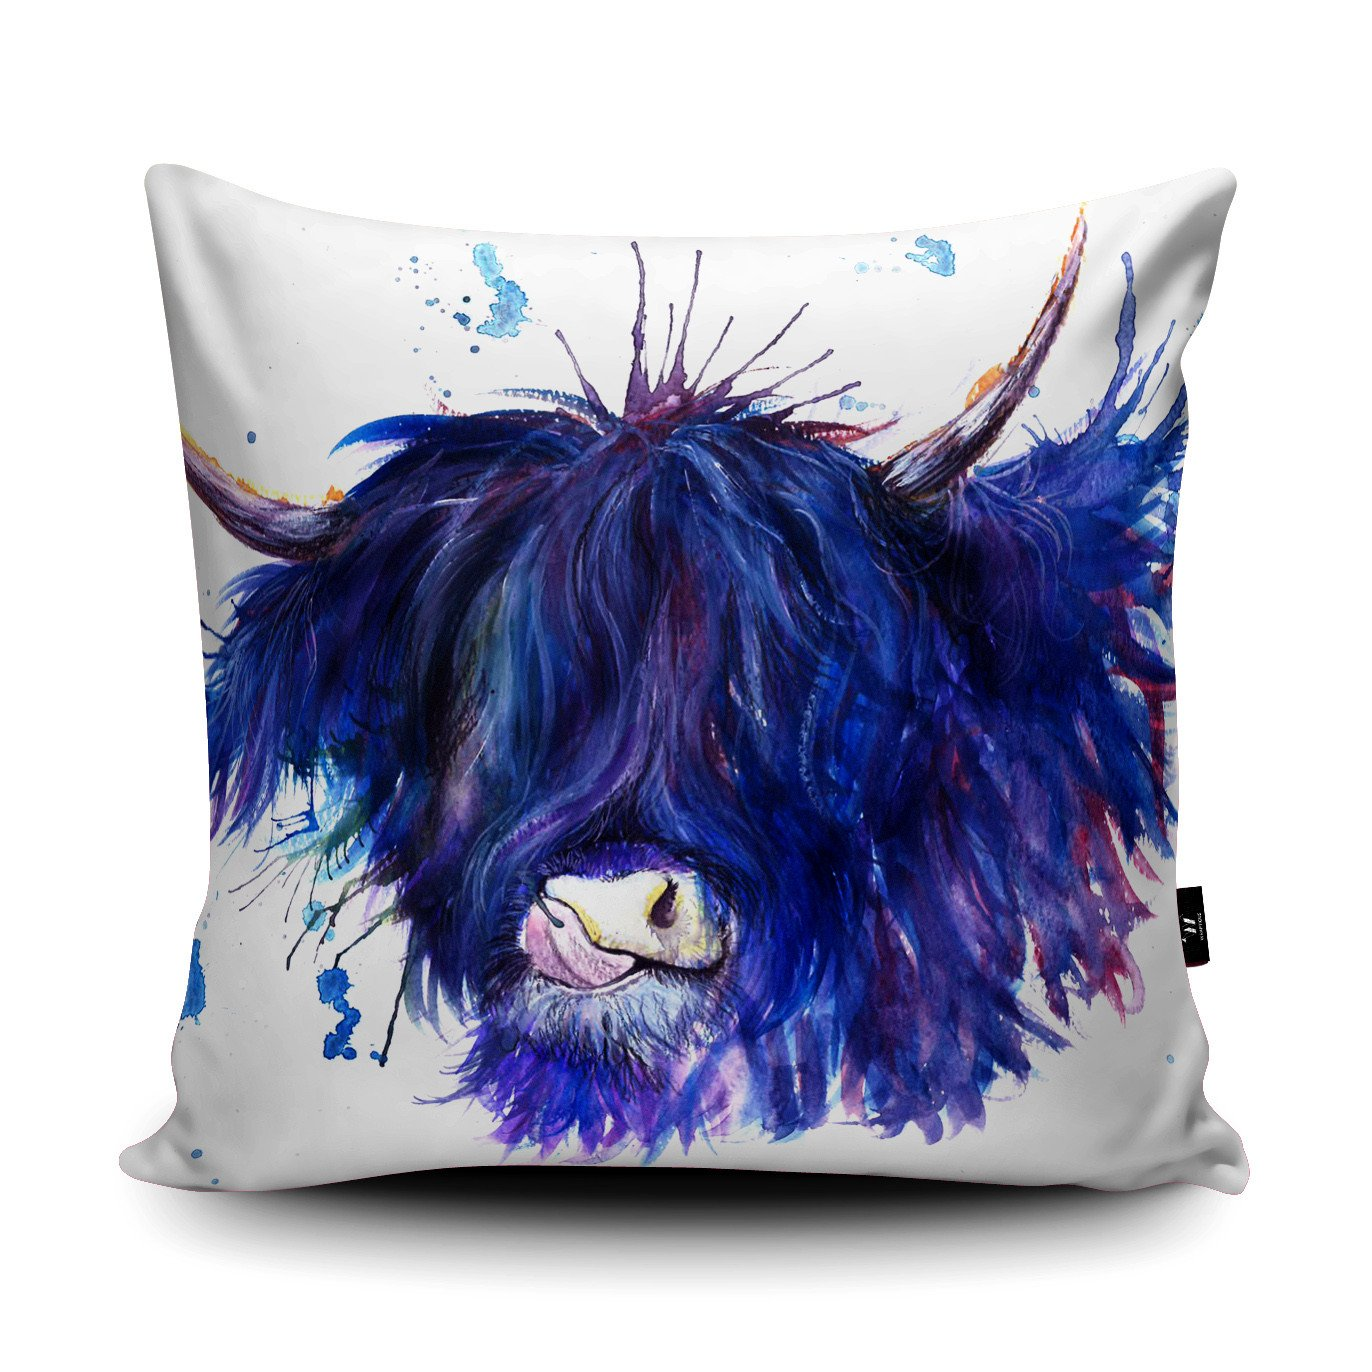 Cushion - Splatter Highland Cow